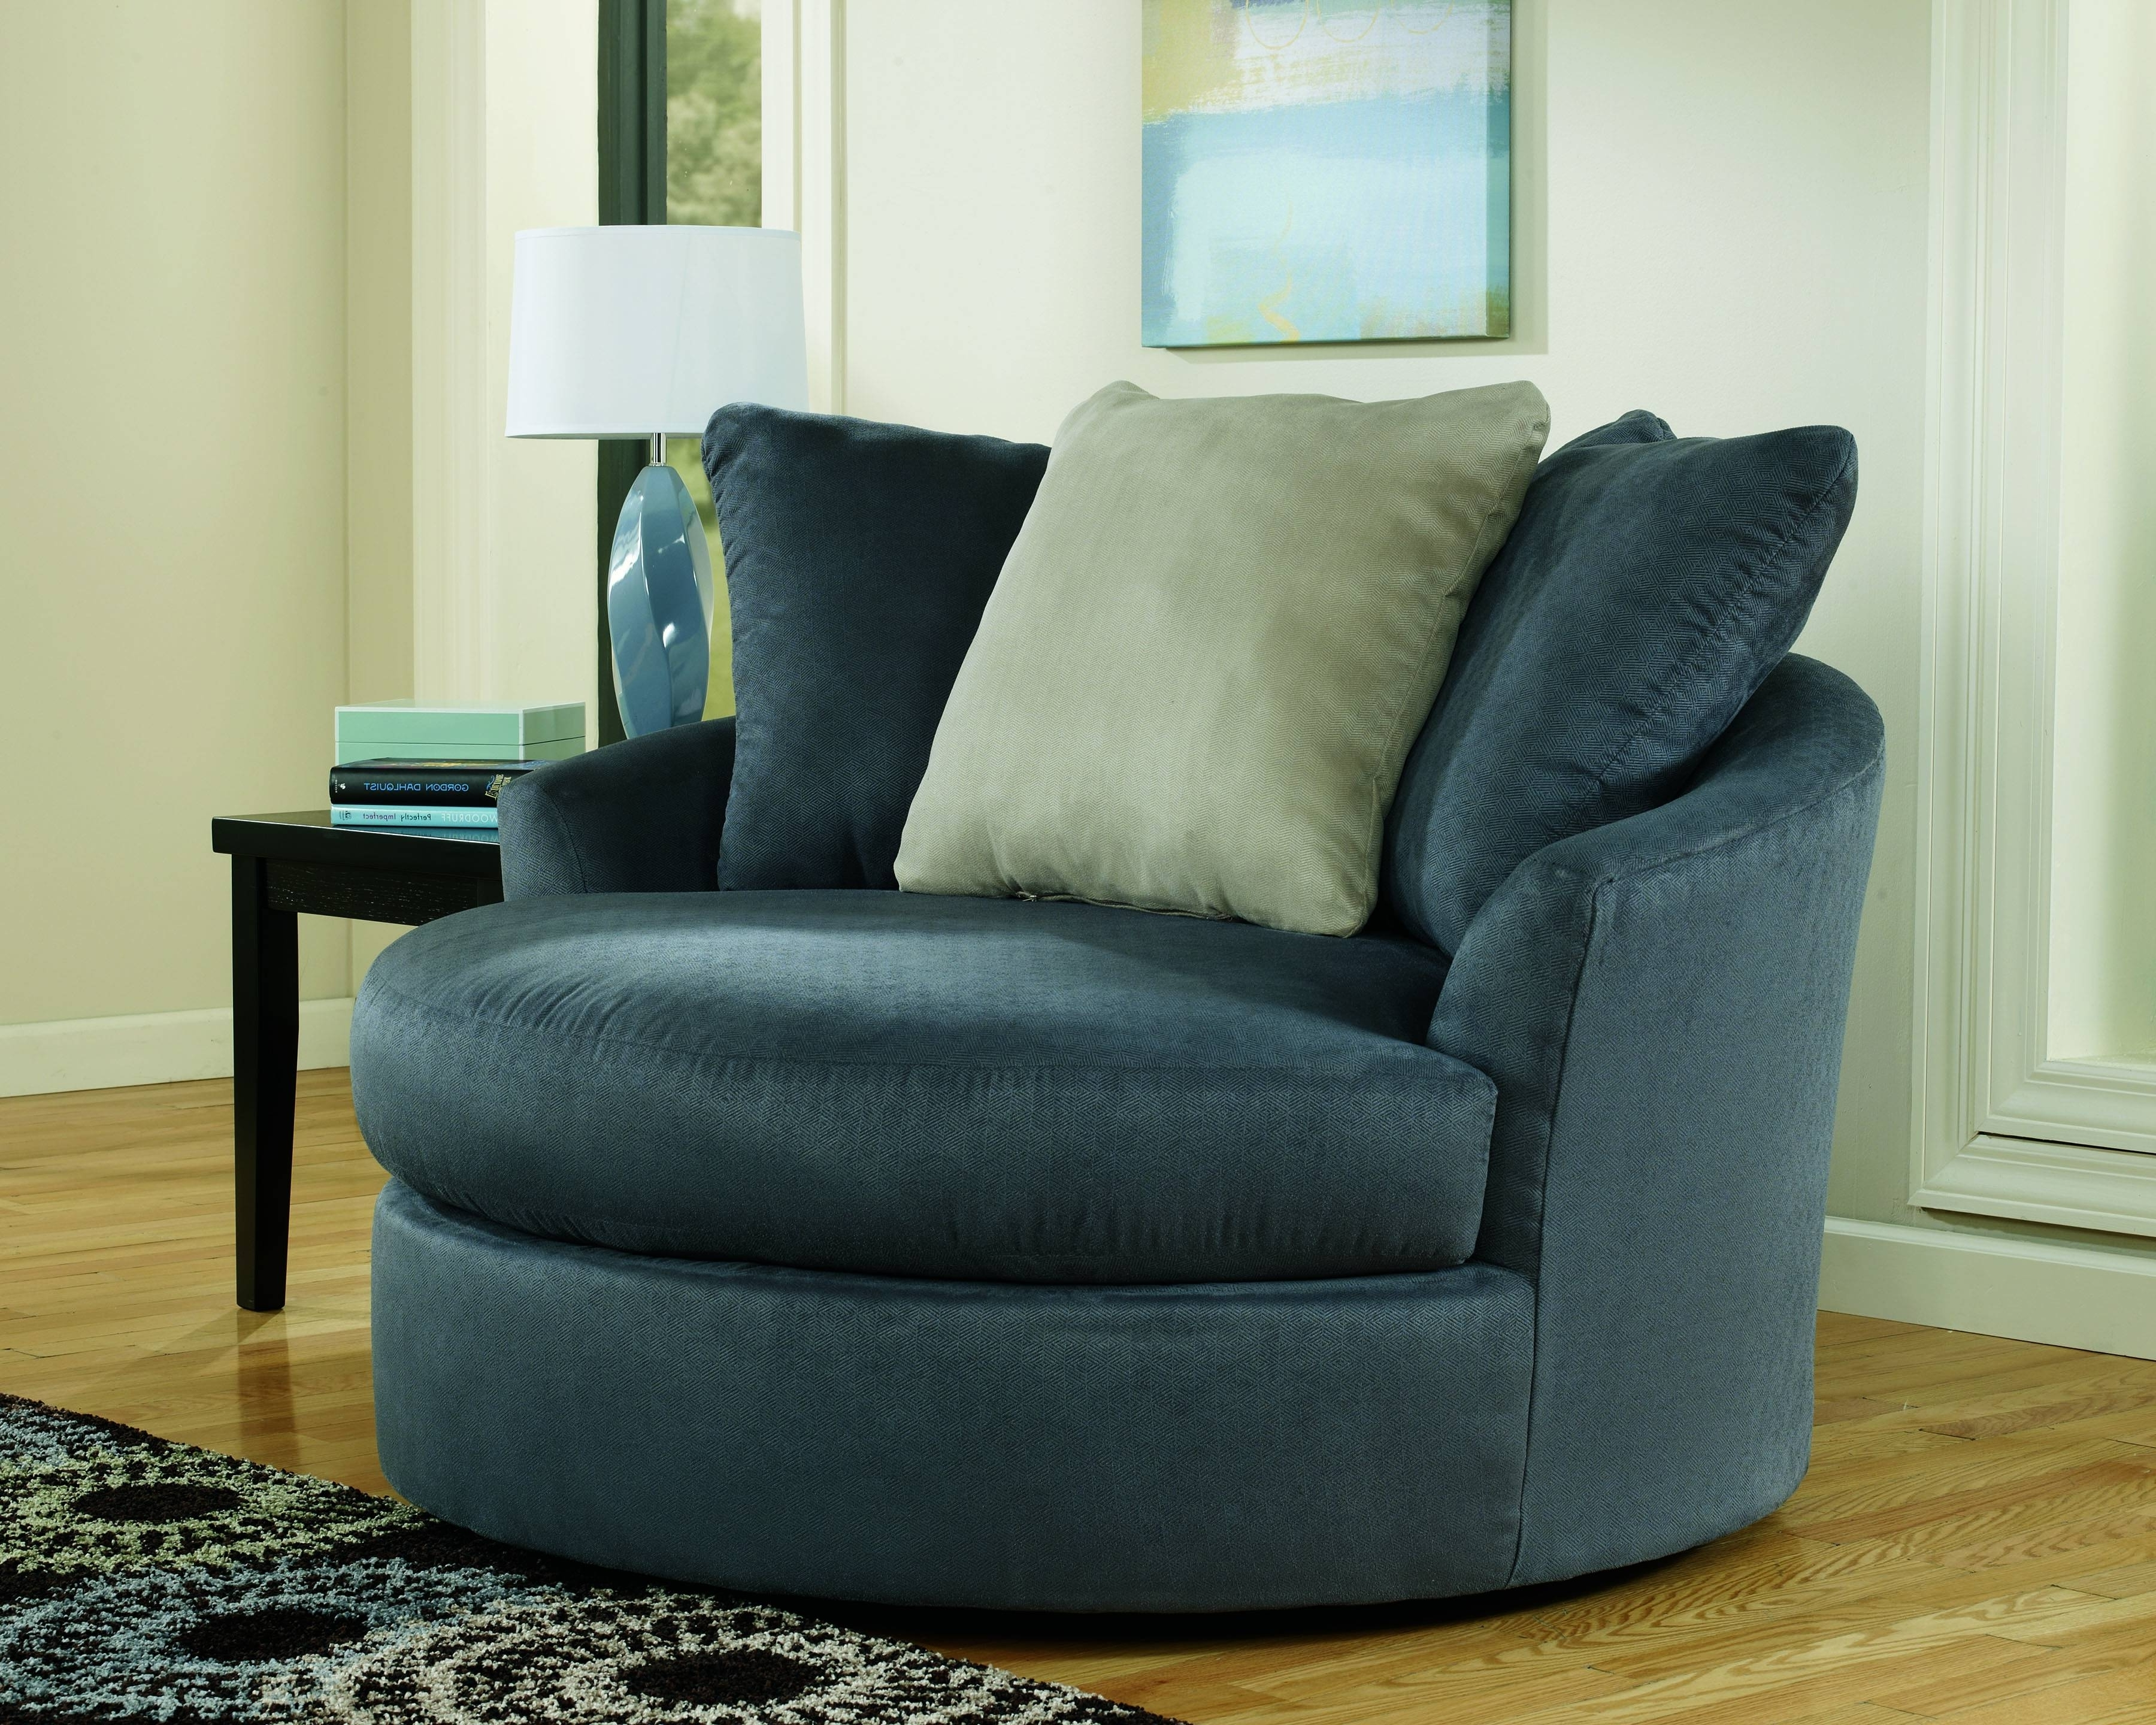 Sofa : Luxury Round Swivel Sofa Chair Latest Large With Crescent Throughout Newest Round Swivel Sofa Chairs (View 18 of 20)